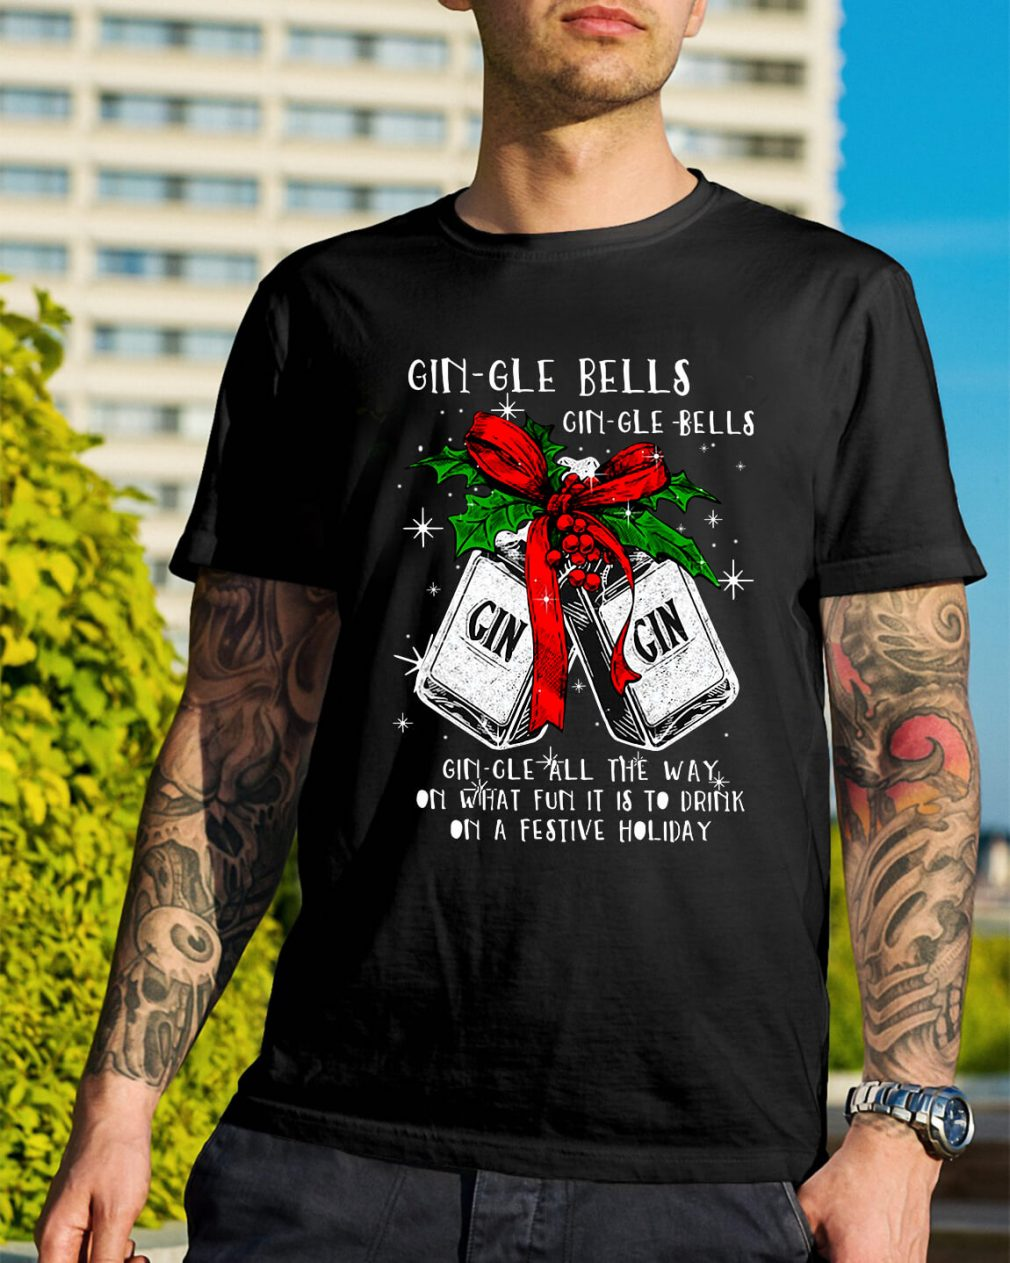 Gin-gle bells gin-gle-bell gin-gle bell all the way Guys Shirt